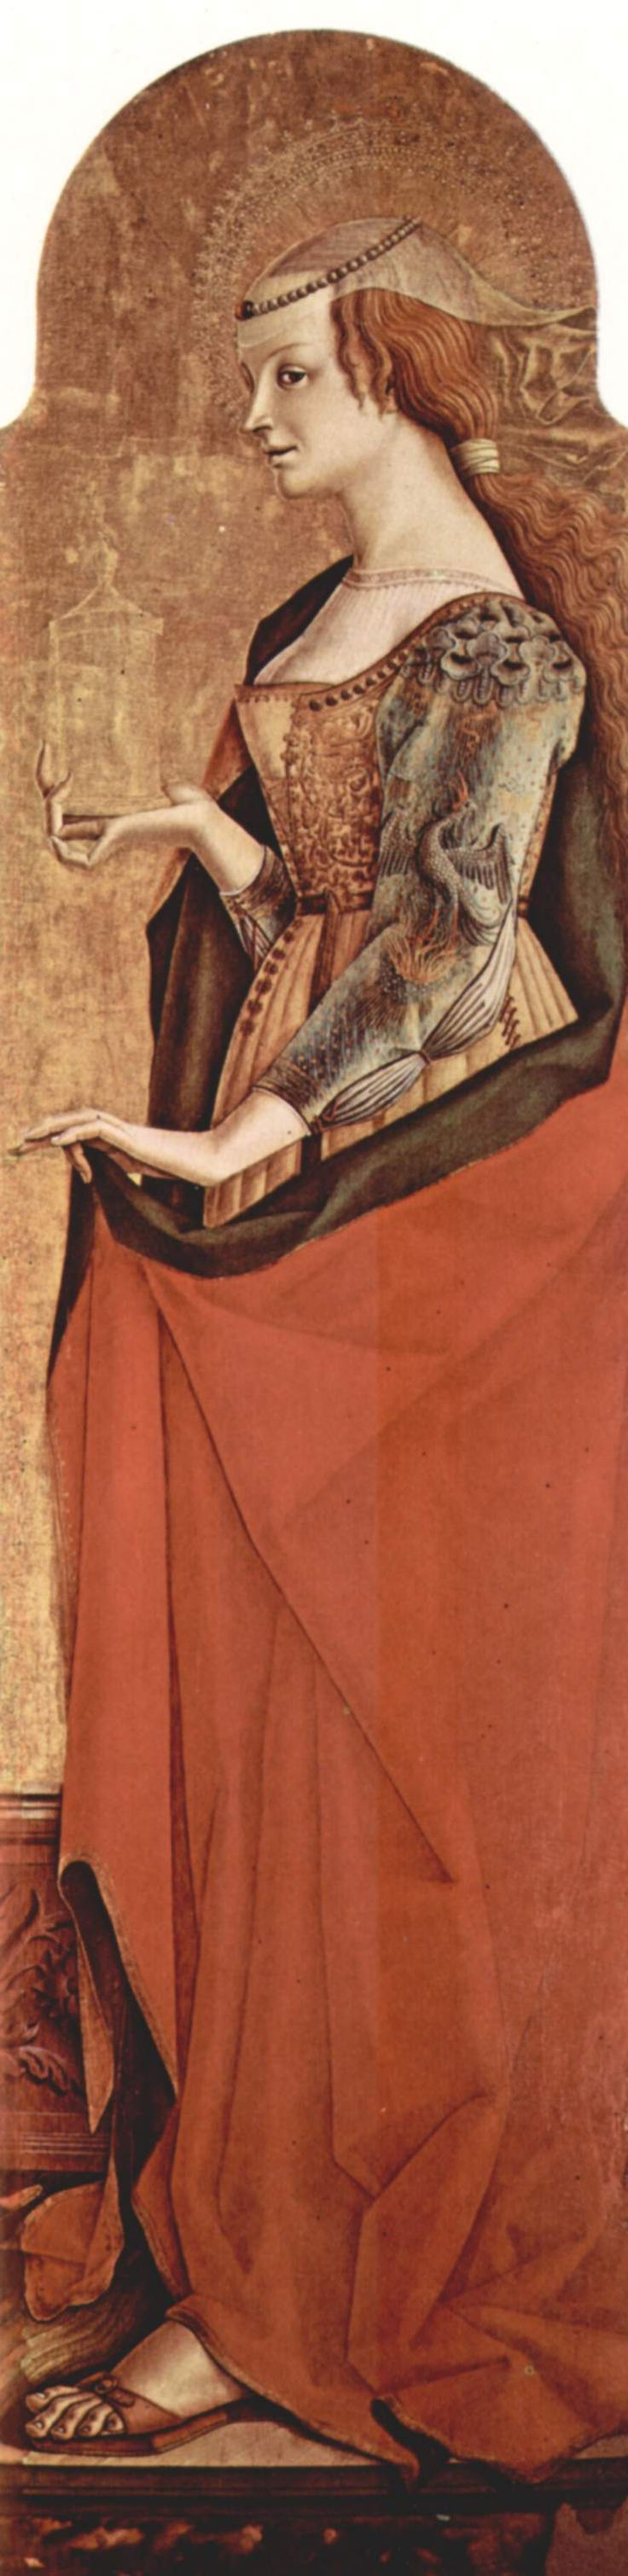 Carlo Crivelli ~ Saint Mary Magdalene grail barely visible